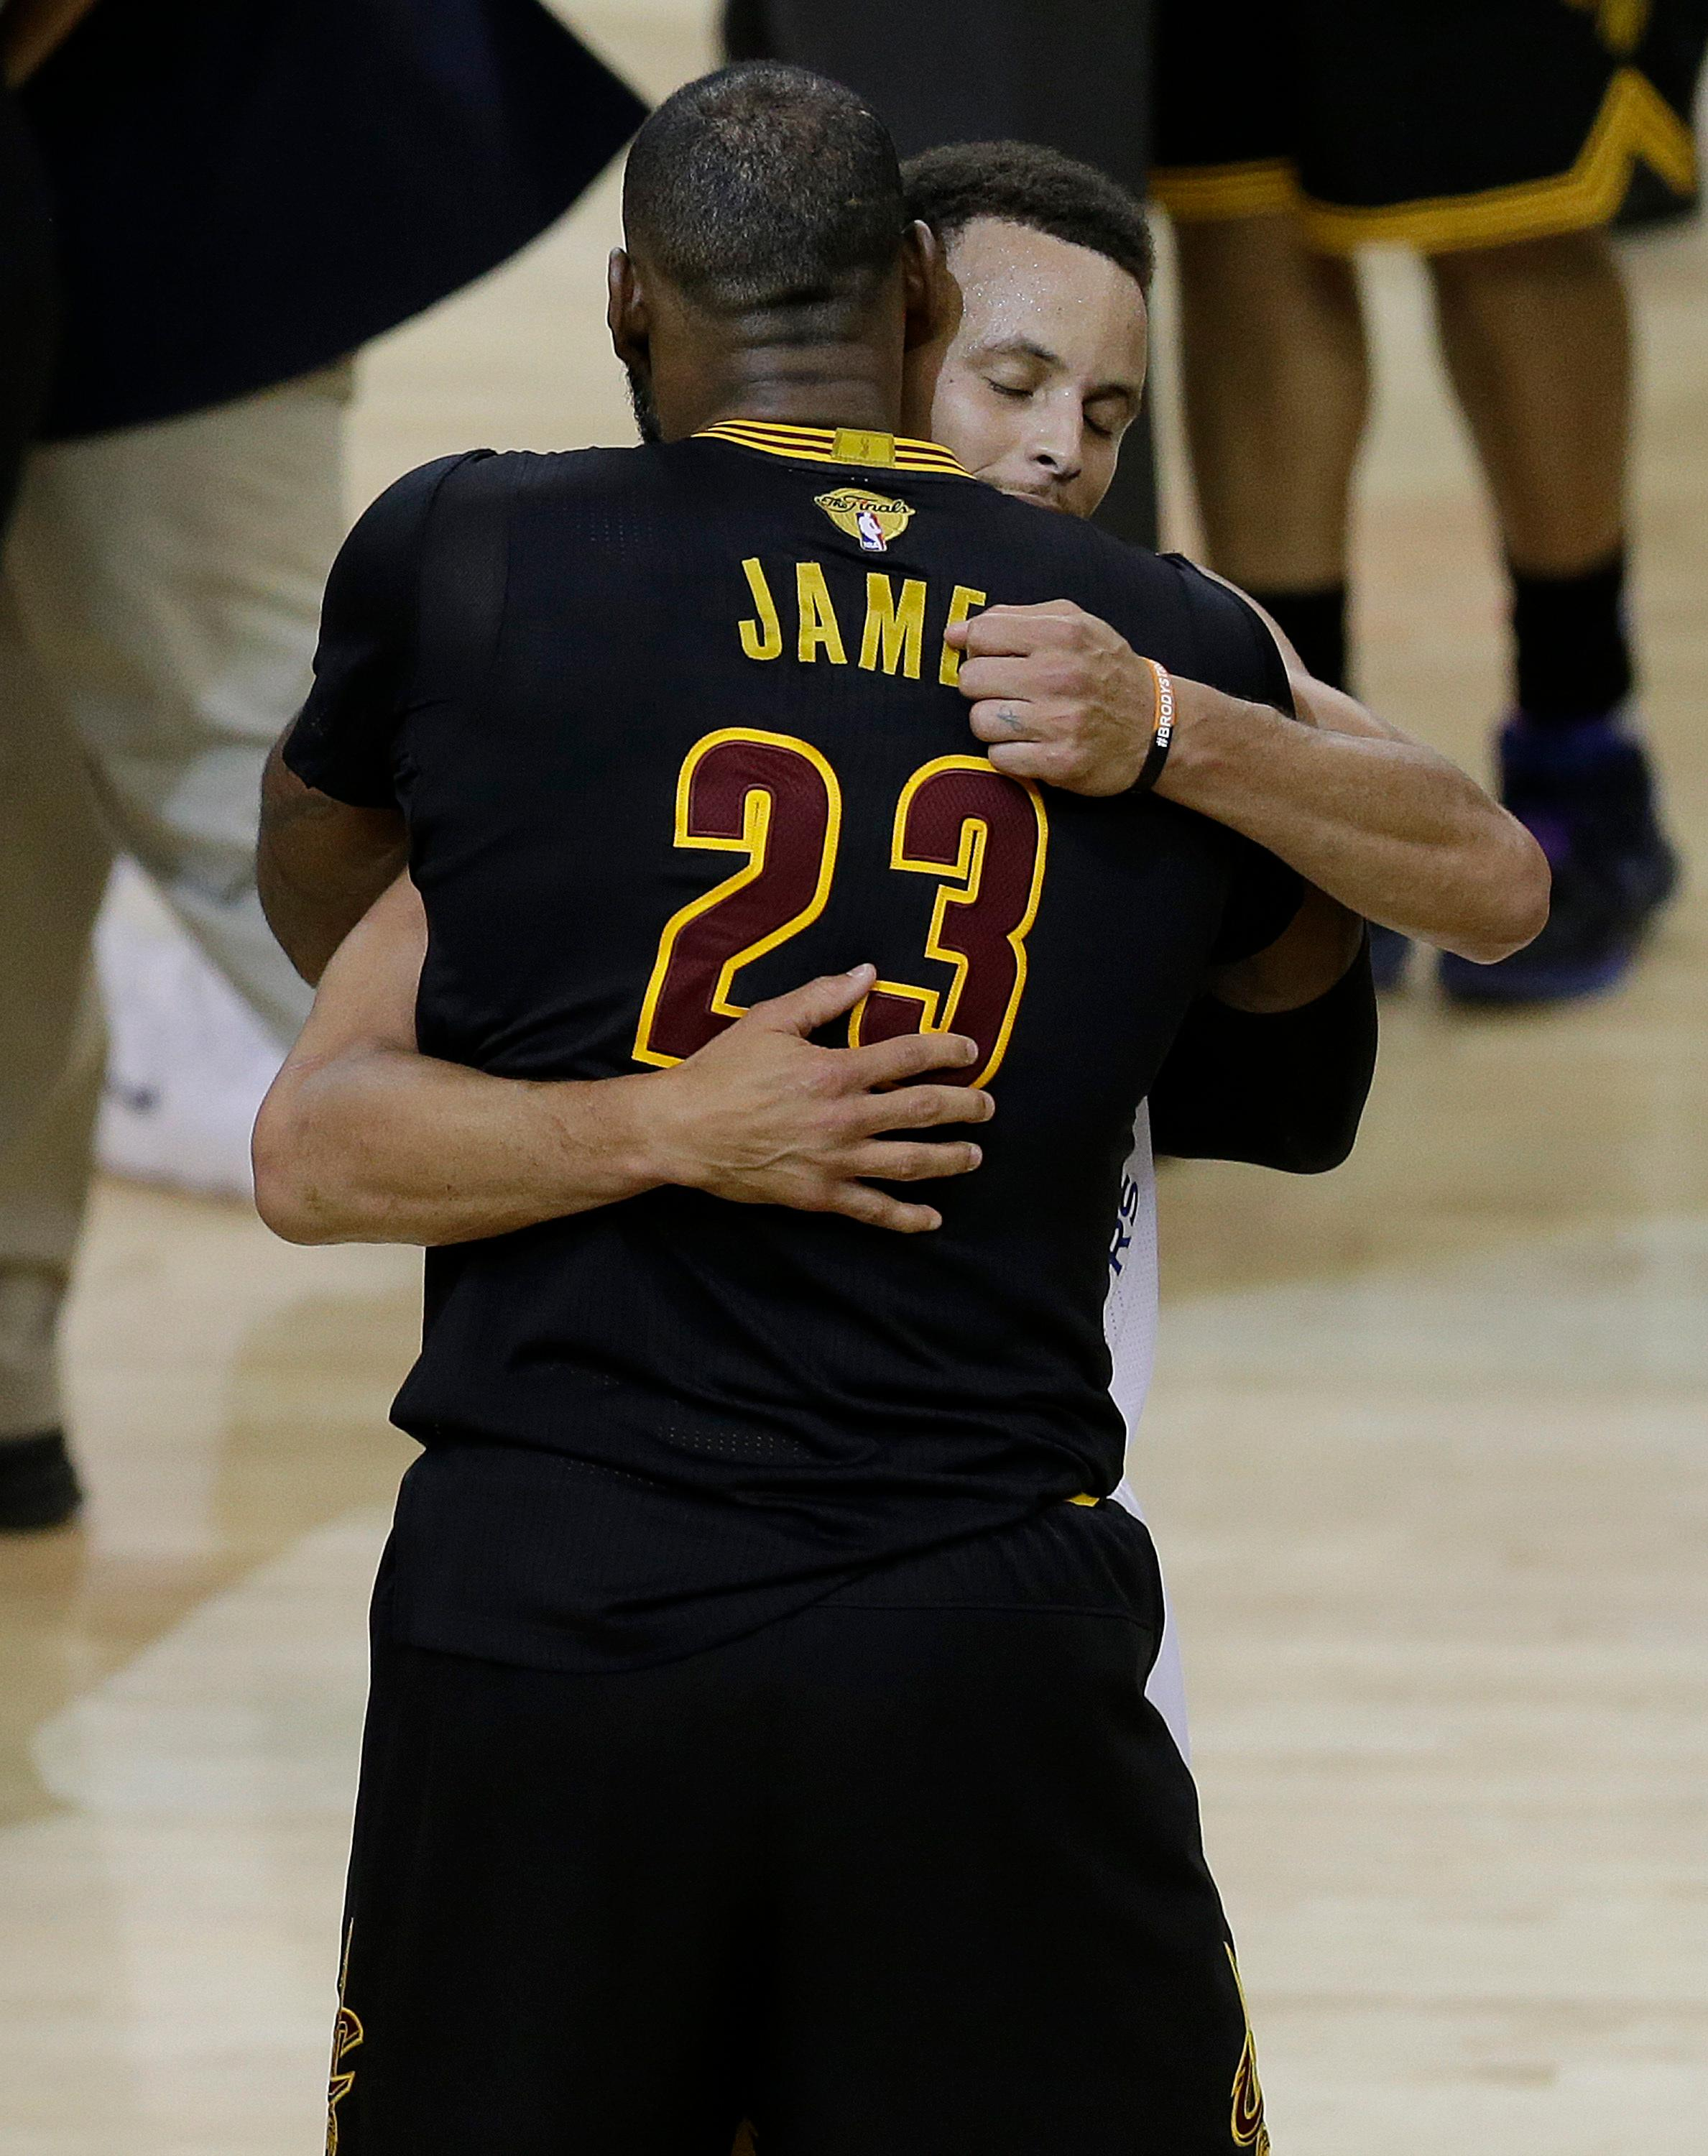 Cleveland Cavaliers forward LeBron James (23) hugs Golden State Warriors guard Stephen Curry after Game 5 of basketball's NBA Finals in Oakland, Calif., Monday, June 12, 2017. The Warriors won 129-120 to win the NBA championship. (AP Photo/Ben Margot)